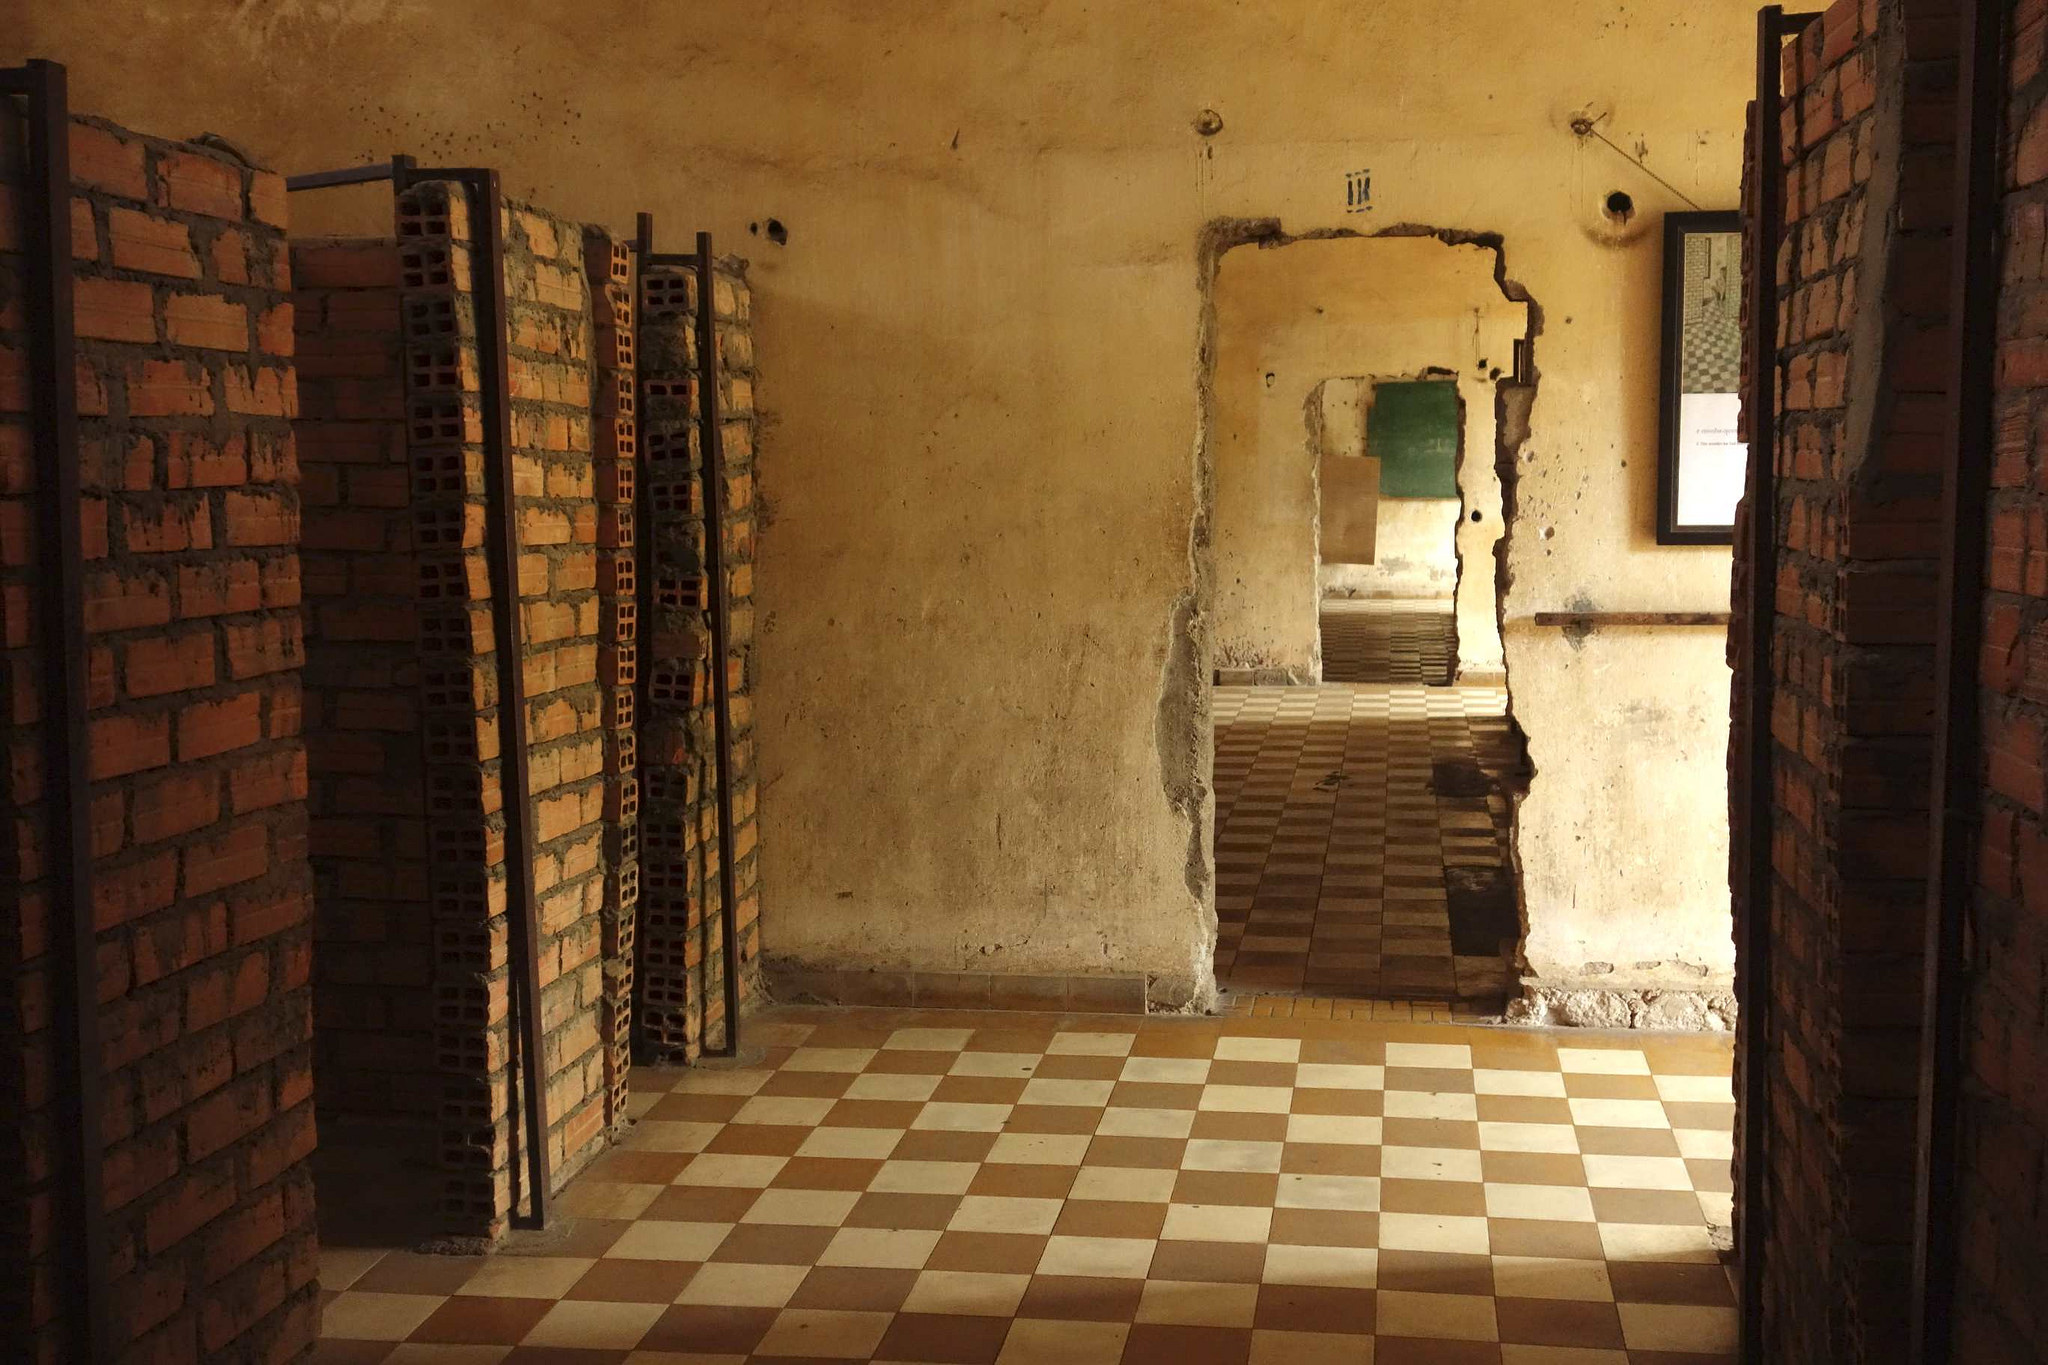 Tuol Sleng Genocide Museum - Museum in Phnom Penh